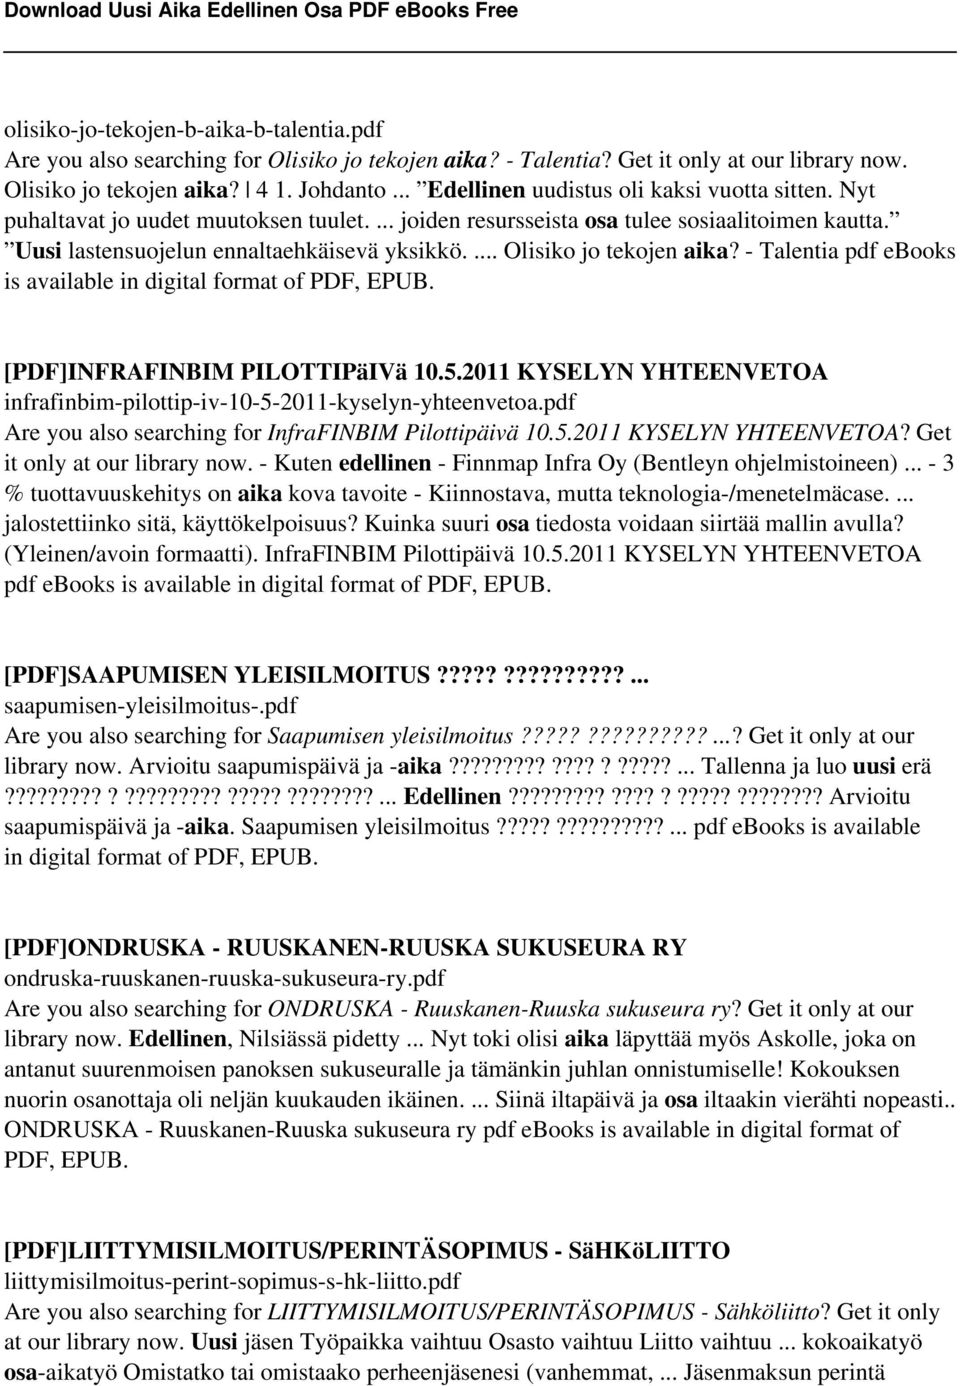 ... Olisiko jo tekojen aika? - Talentia pdf ebooks is available in digital format of PDF, EPUB. [PDF]INFRAFINBIM PILOTTIPäIVä 10.5.